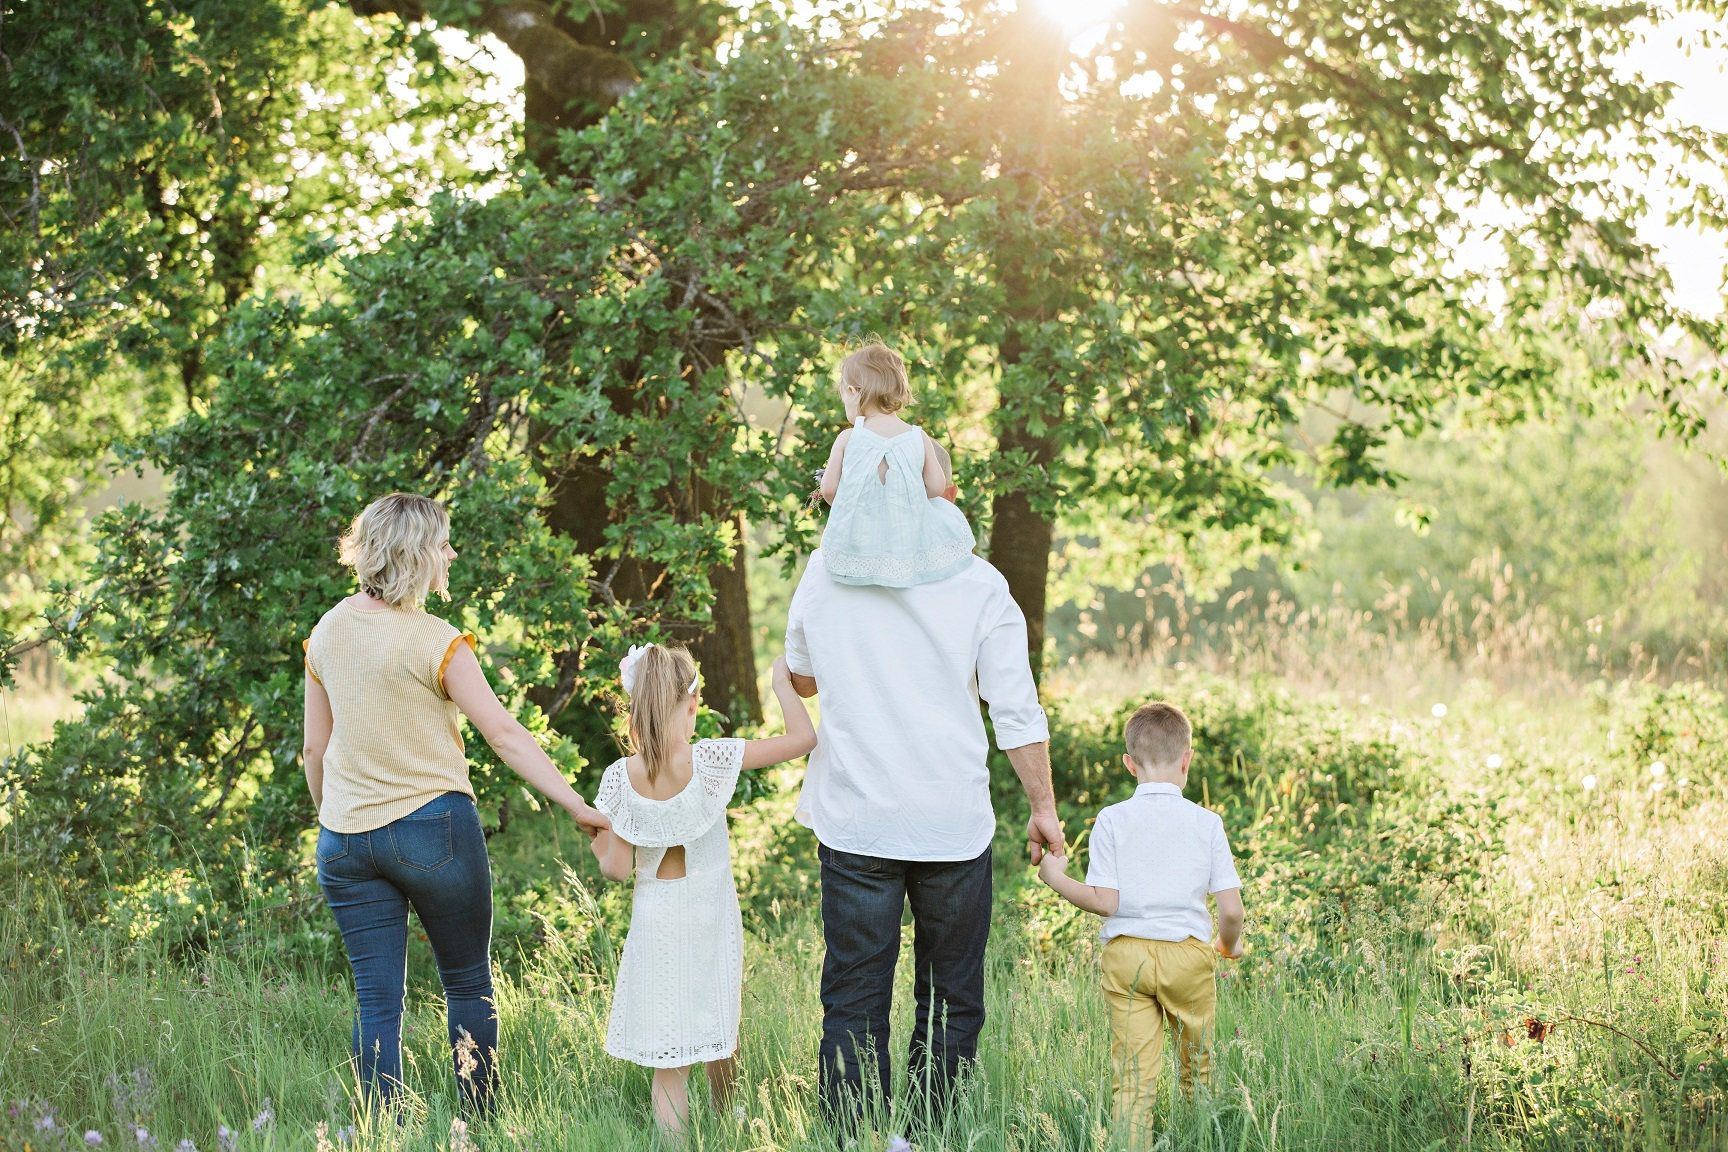 A family with three young children walk through woods, with the sunlight streaming through the trees